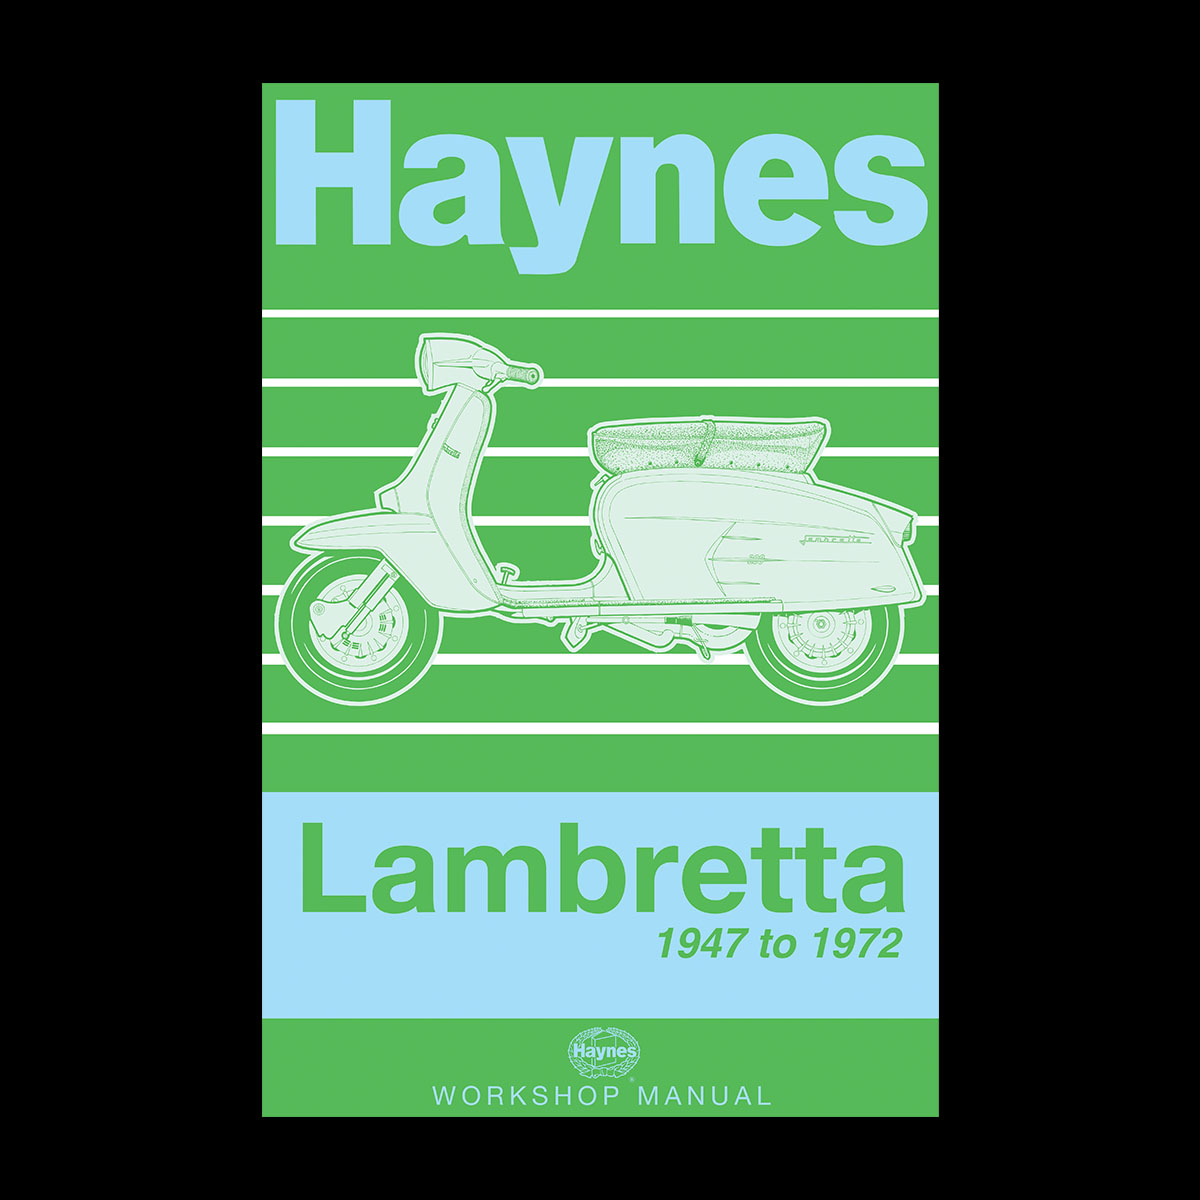 Haynes Workshop Manual Porsche 914 1969-1976 Service and Repair 4 Cylinder Models